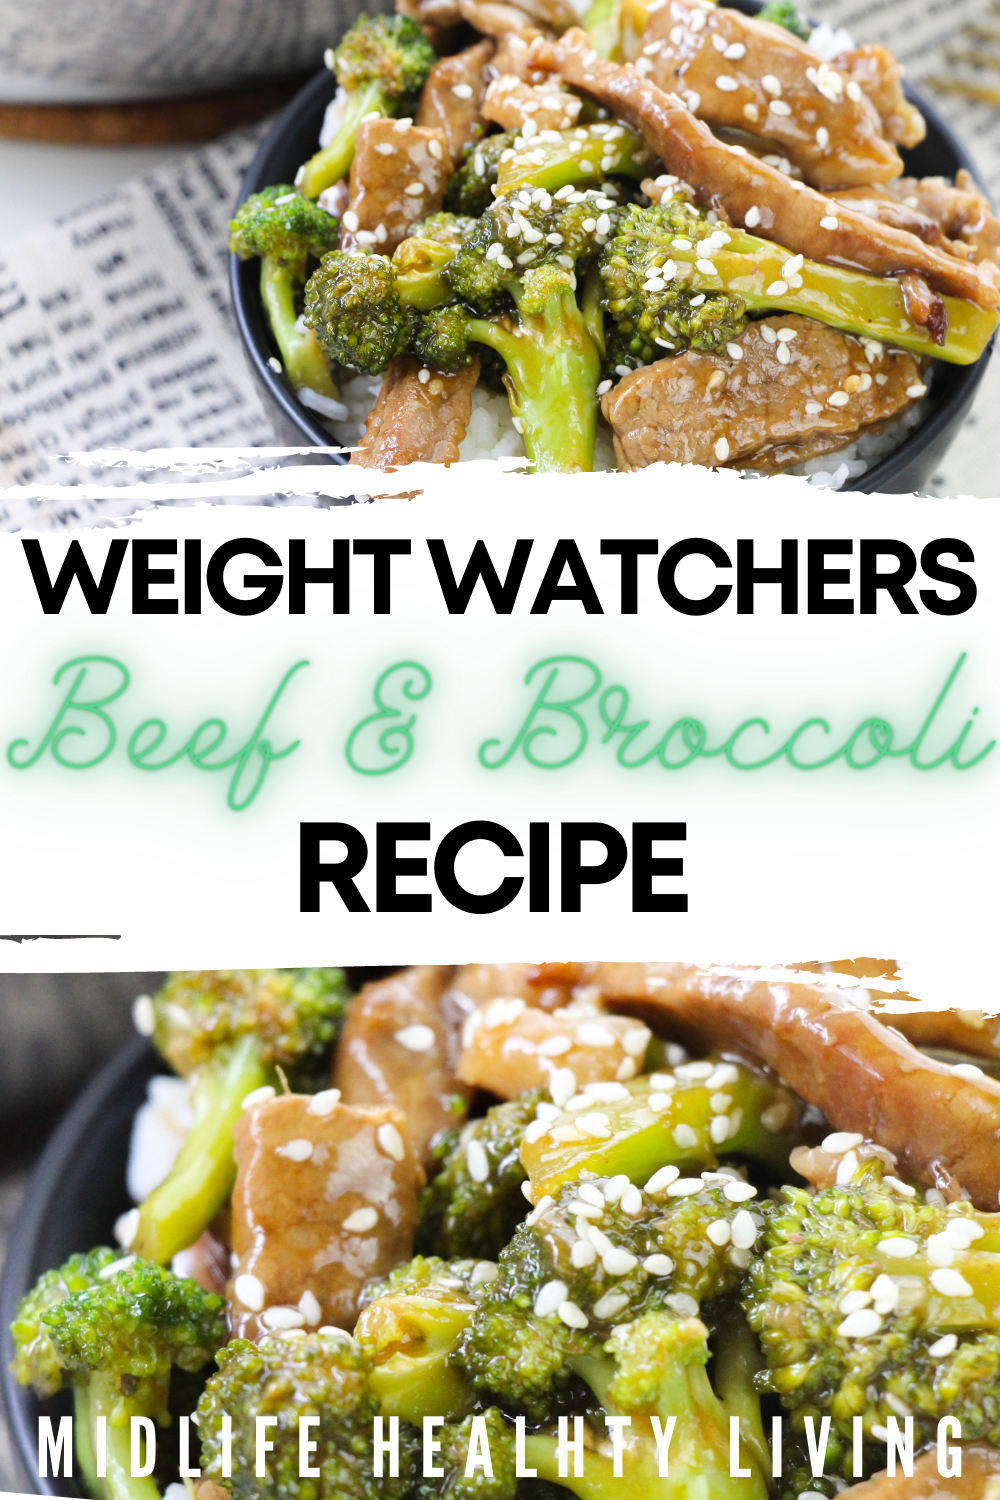 Pin showing the finished weight watchers beef and broccoli recipe ready to eat with title across the middle.